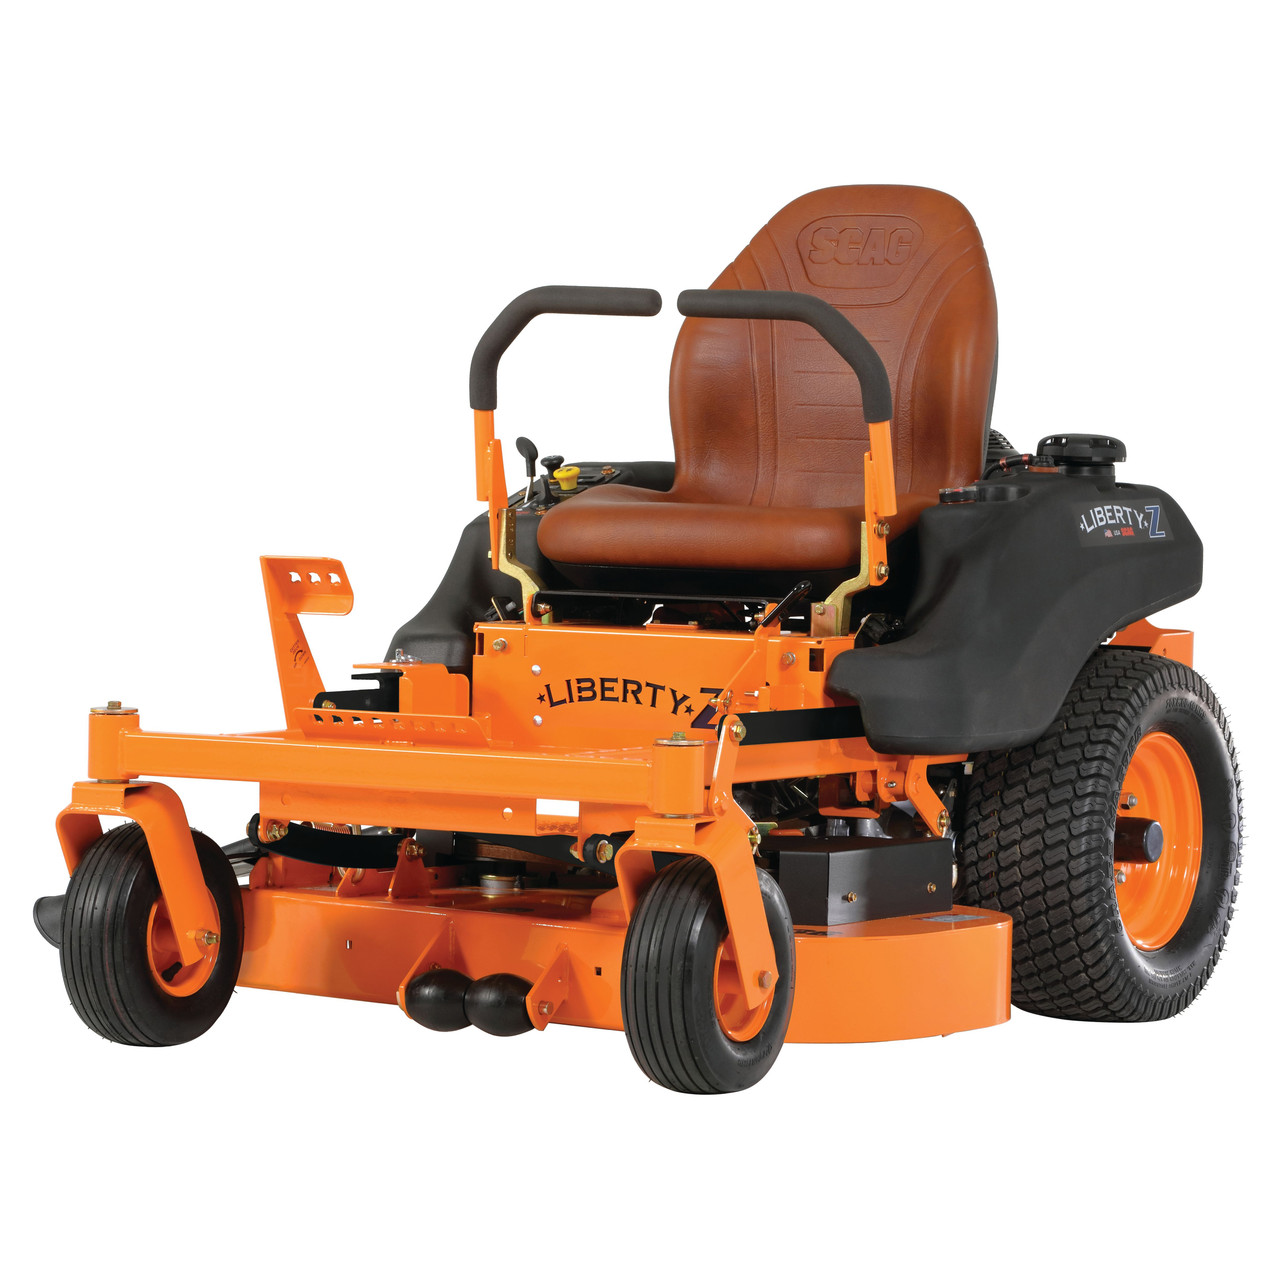 "Scag SZL48-21FR 48"" Liberty Z Zero-Turn Riding Lawn Mower w/ 21hp Kawasaki FR Engine Image"